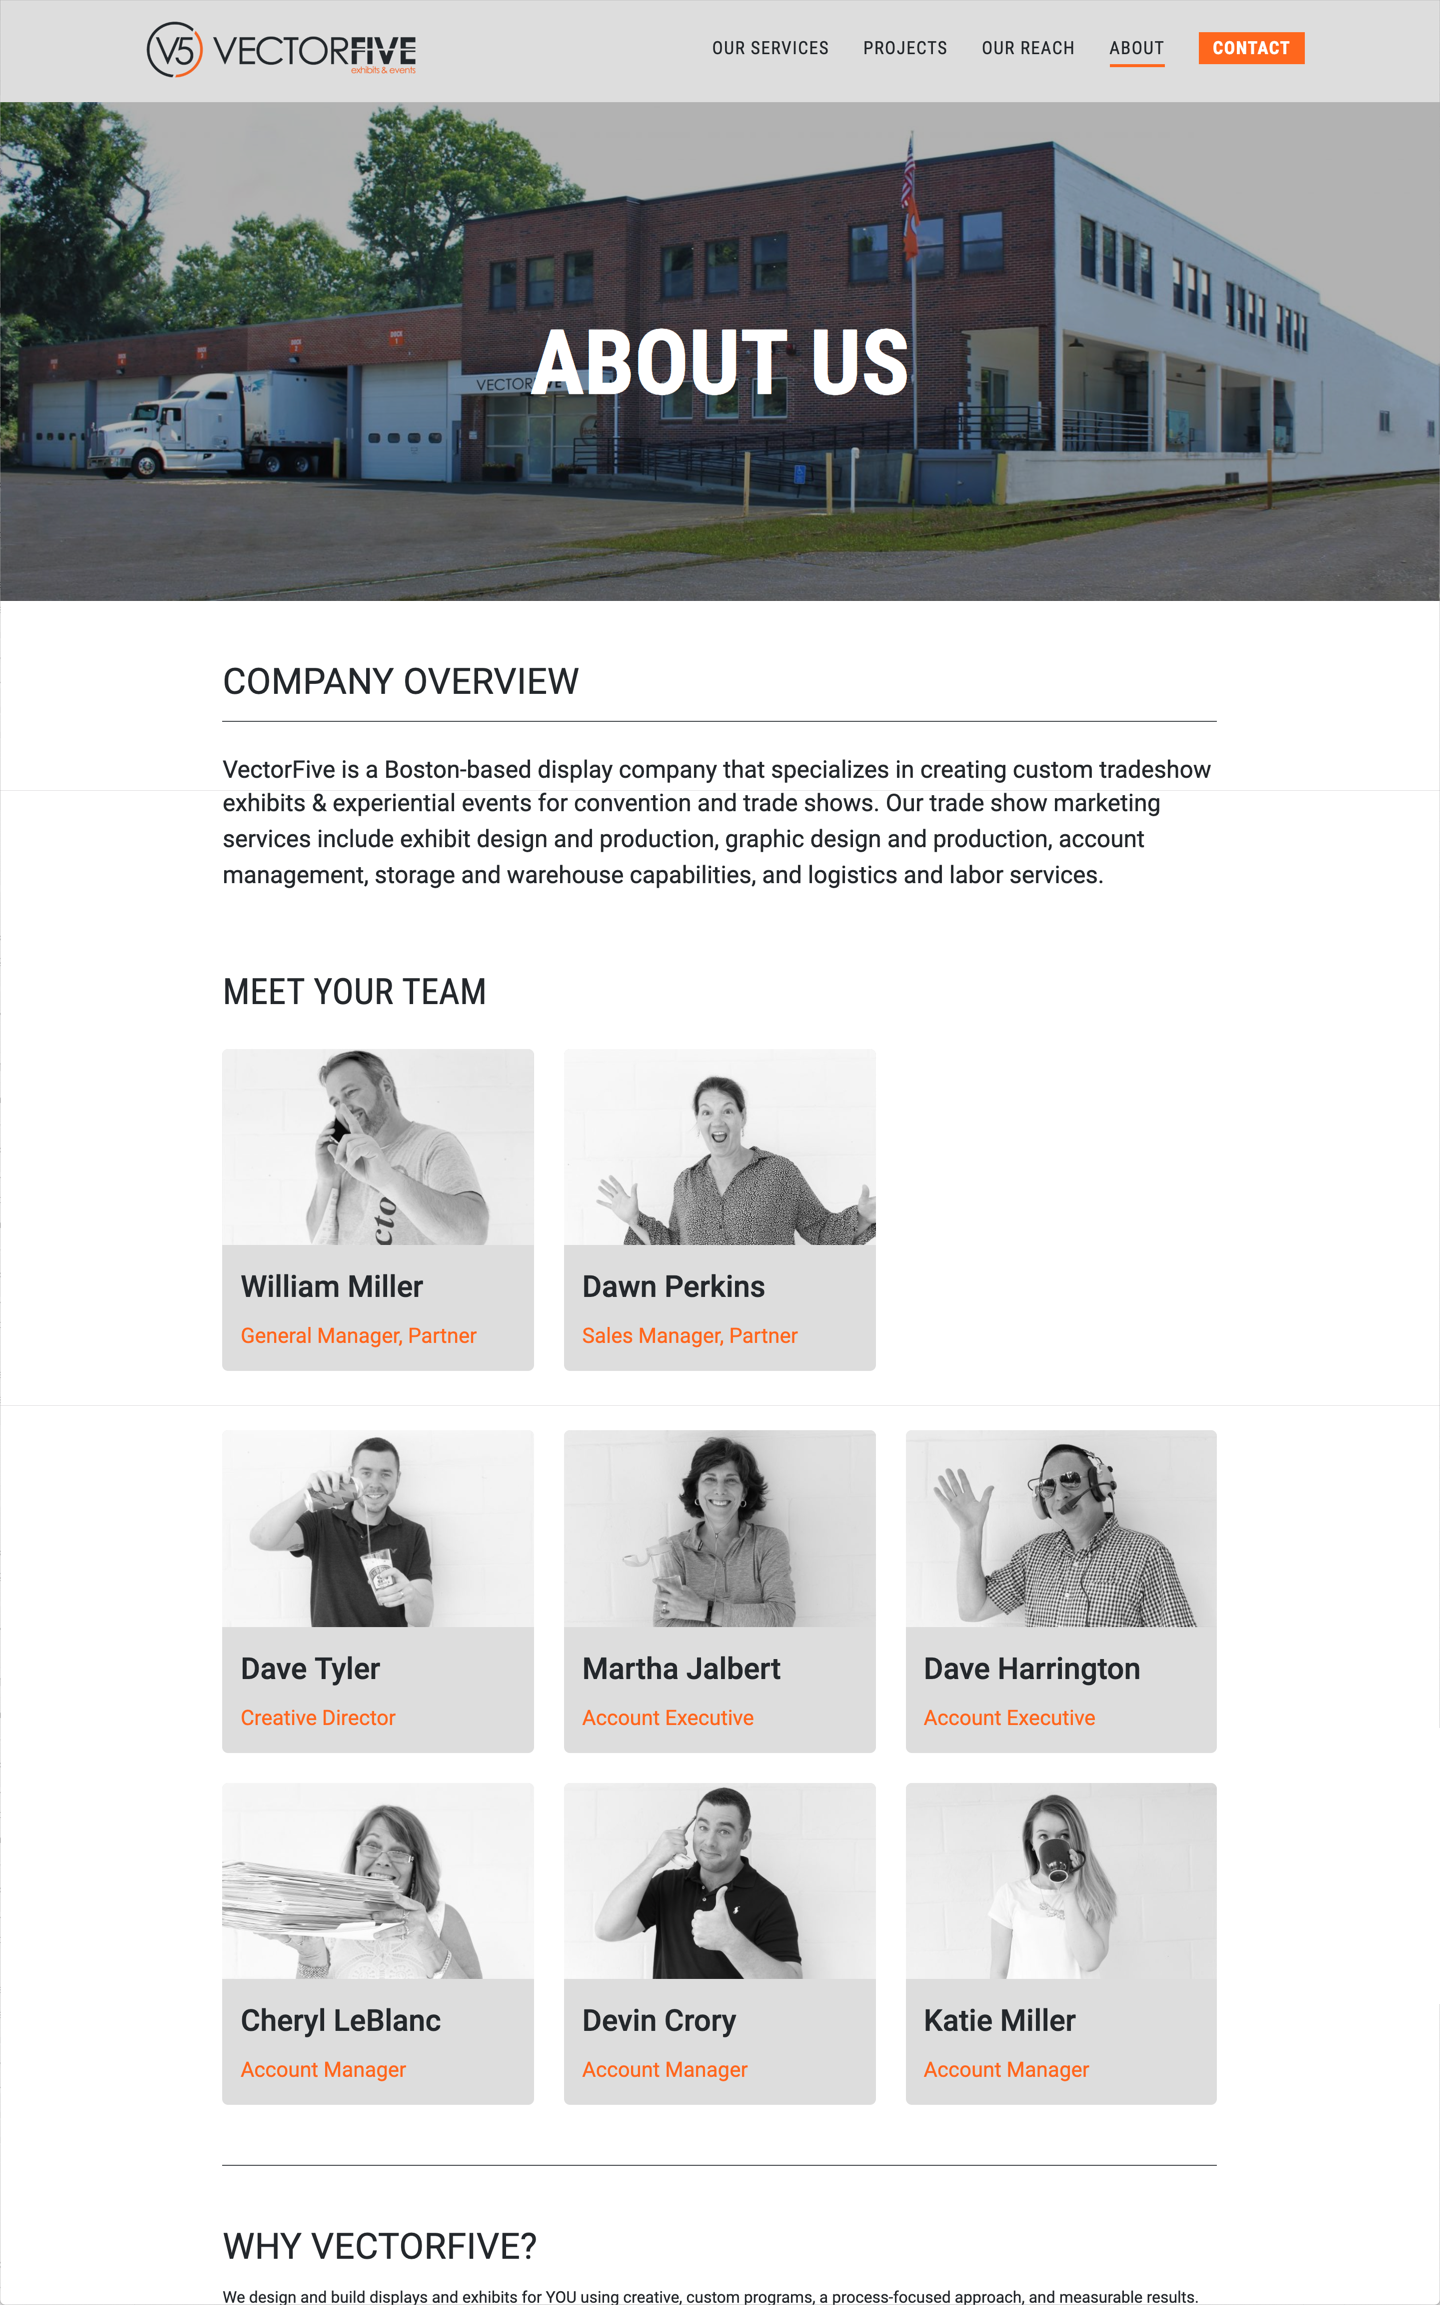 Vector Five About page showcasing team members